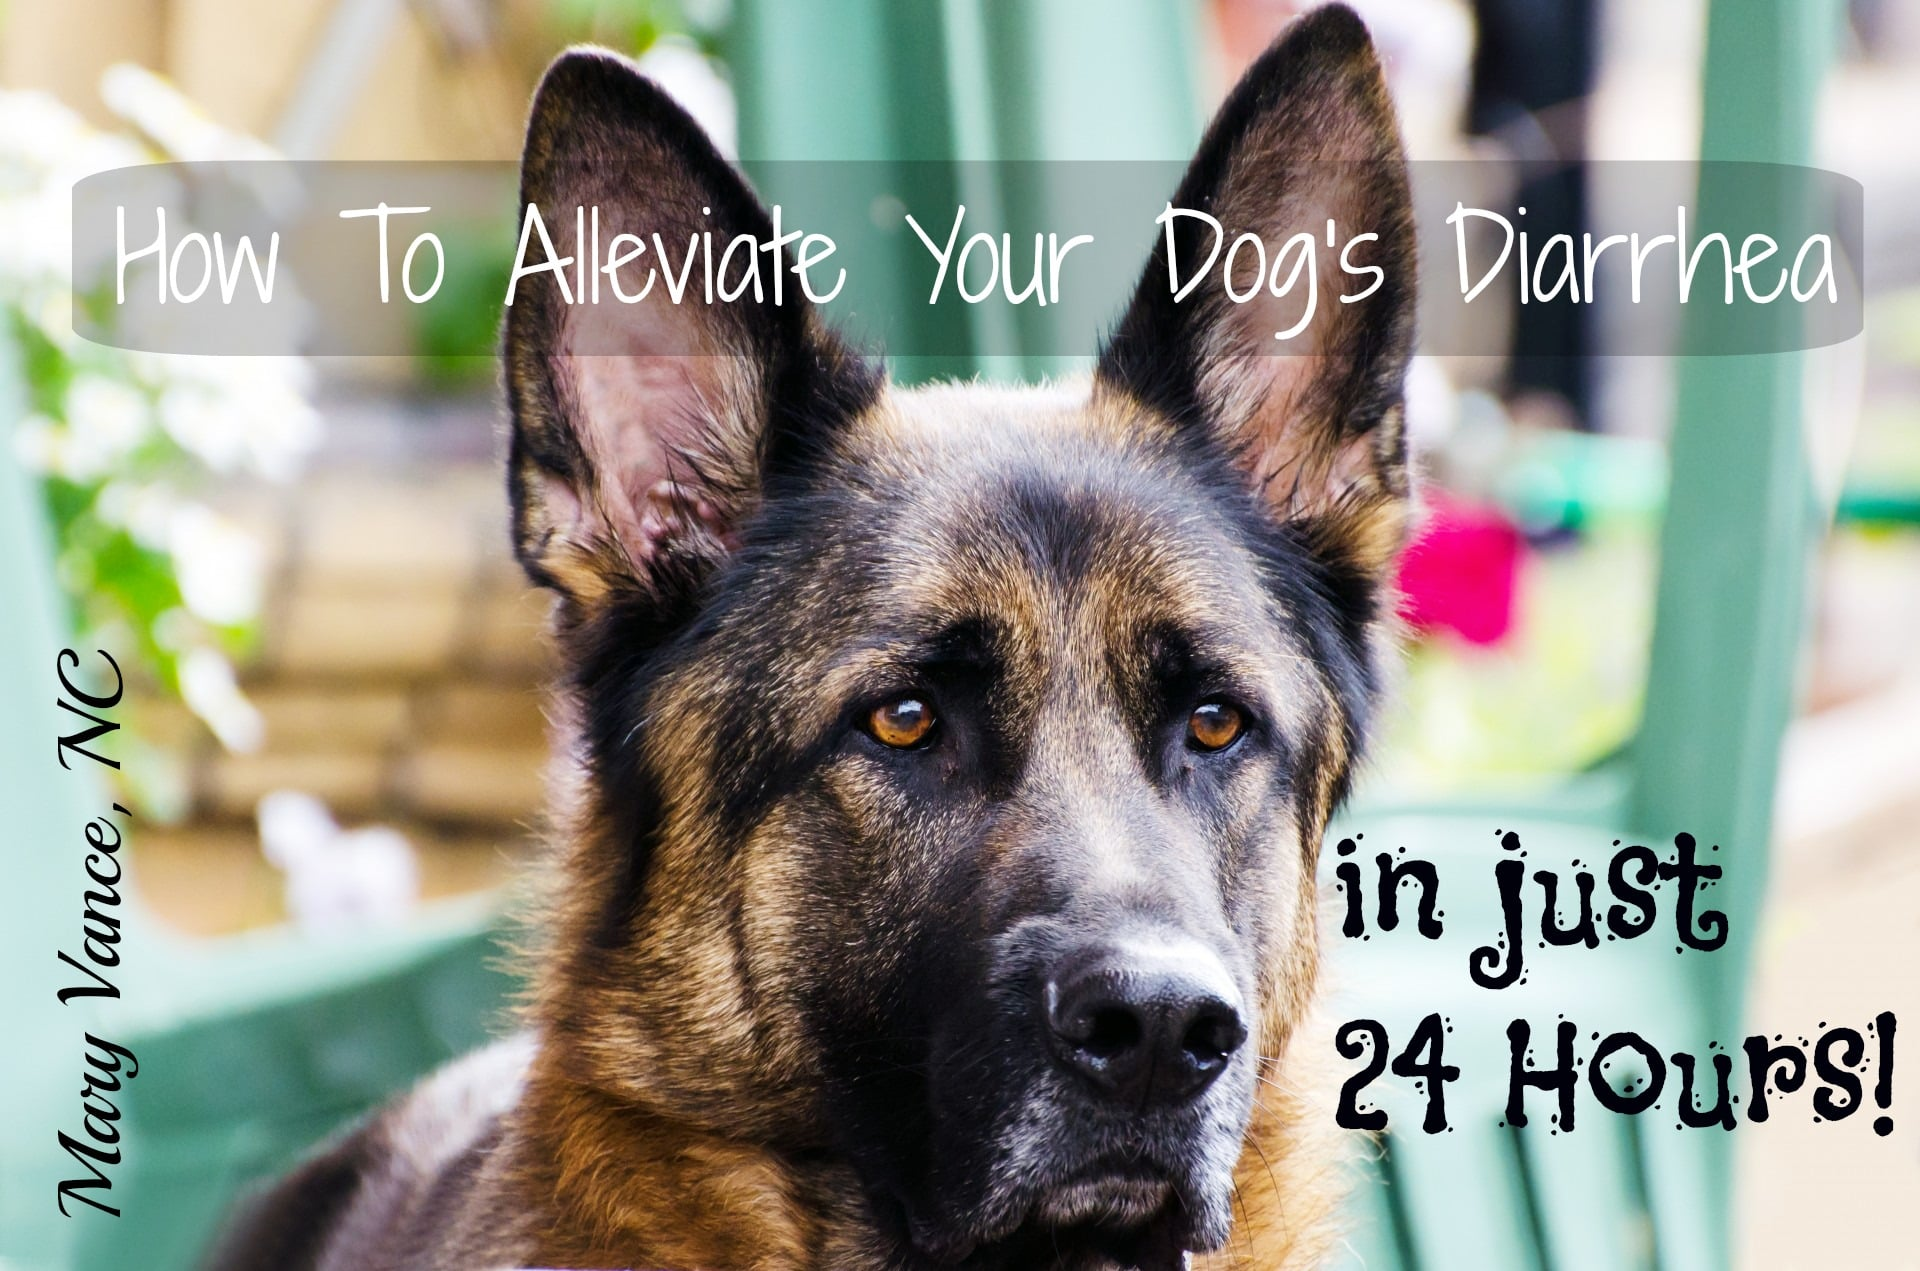 How to Alleviate Your Dog's Diarrhea in